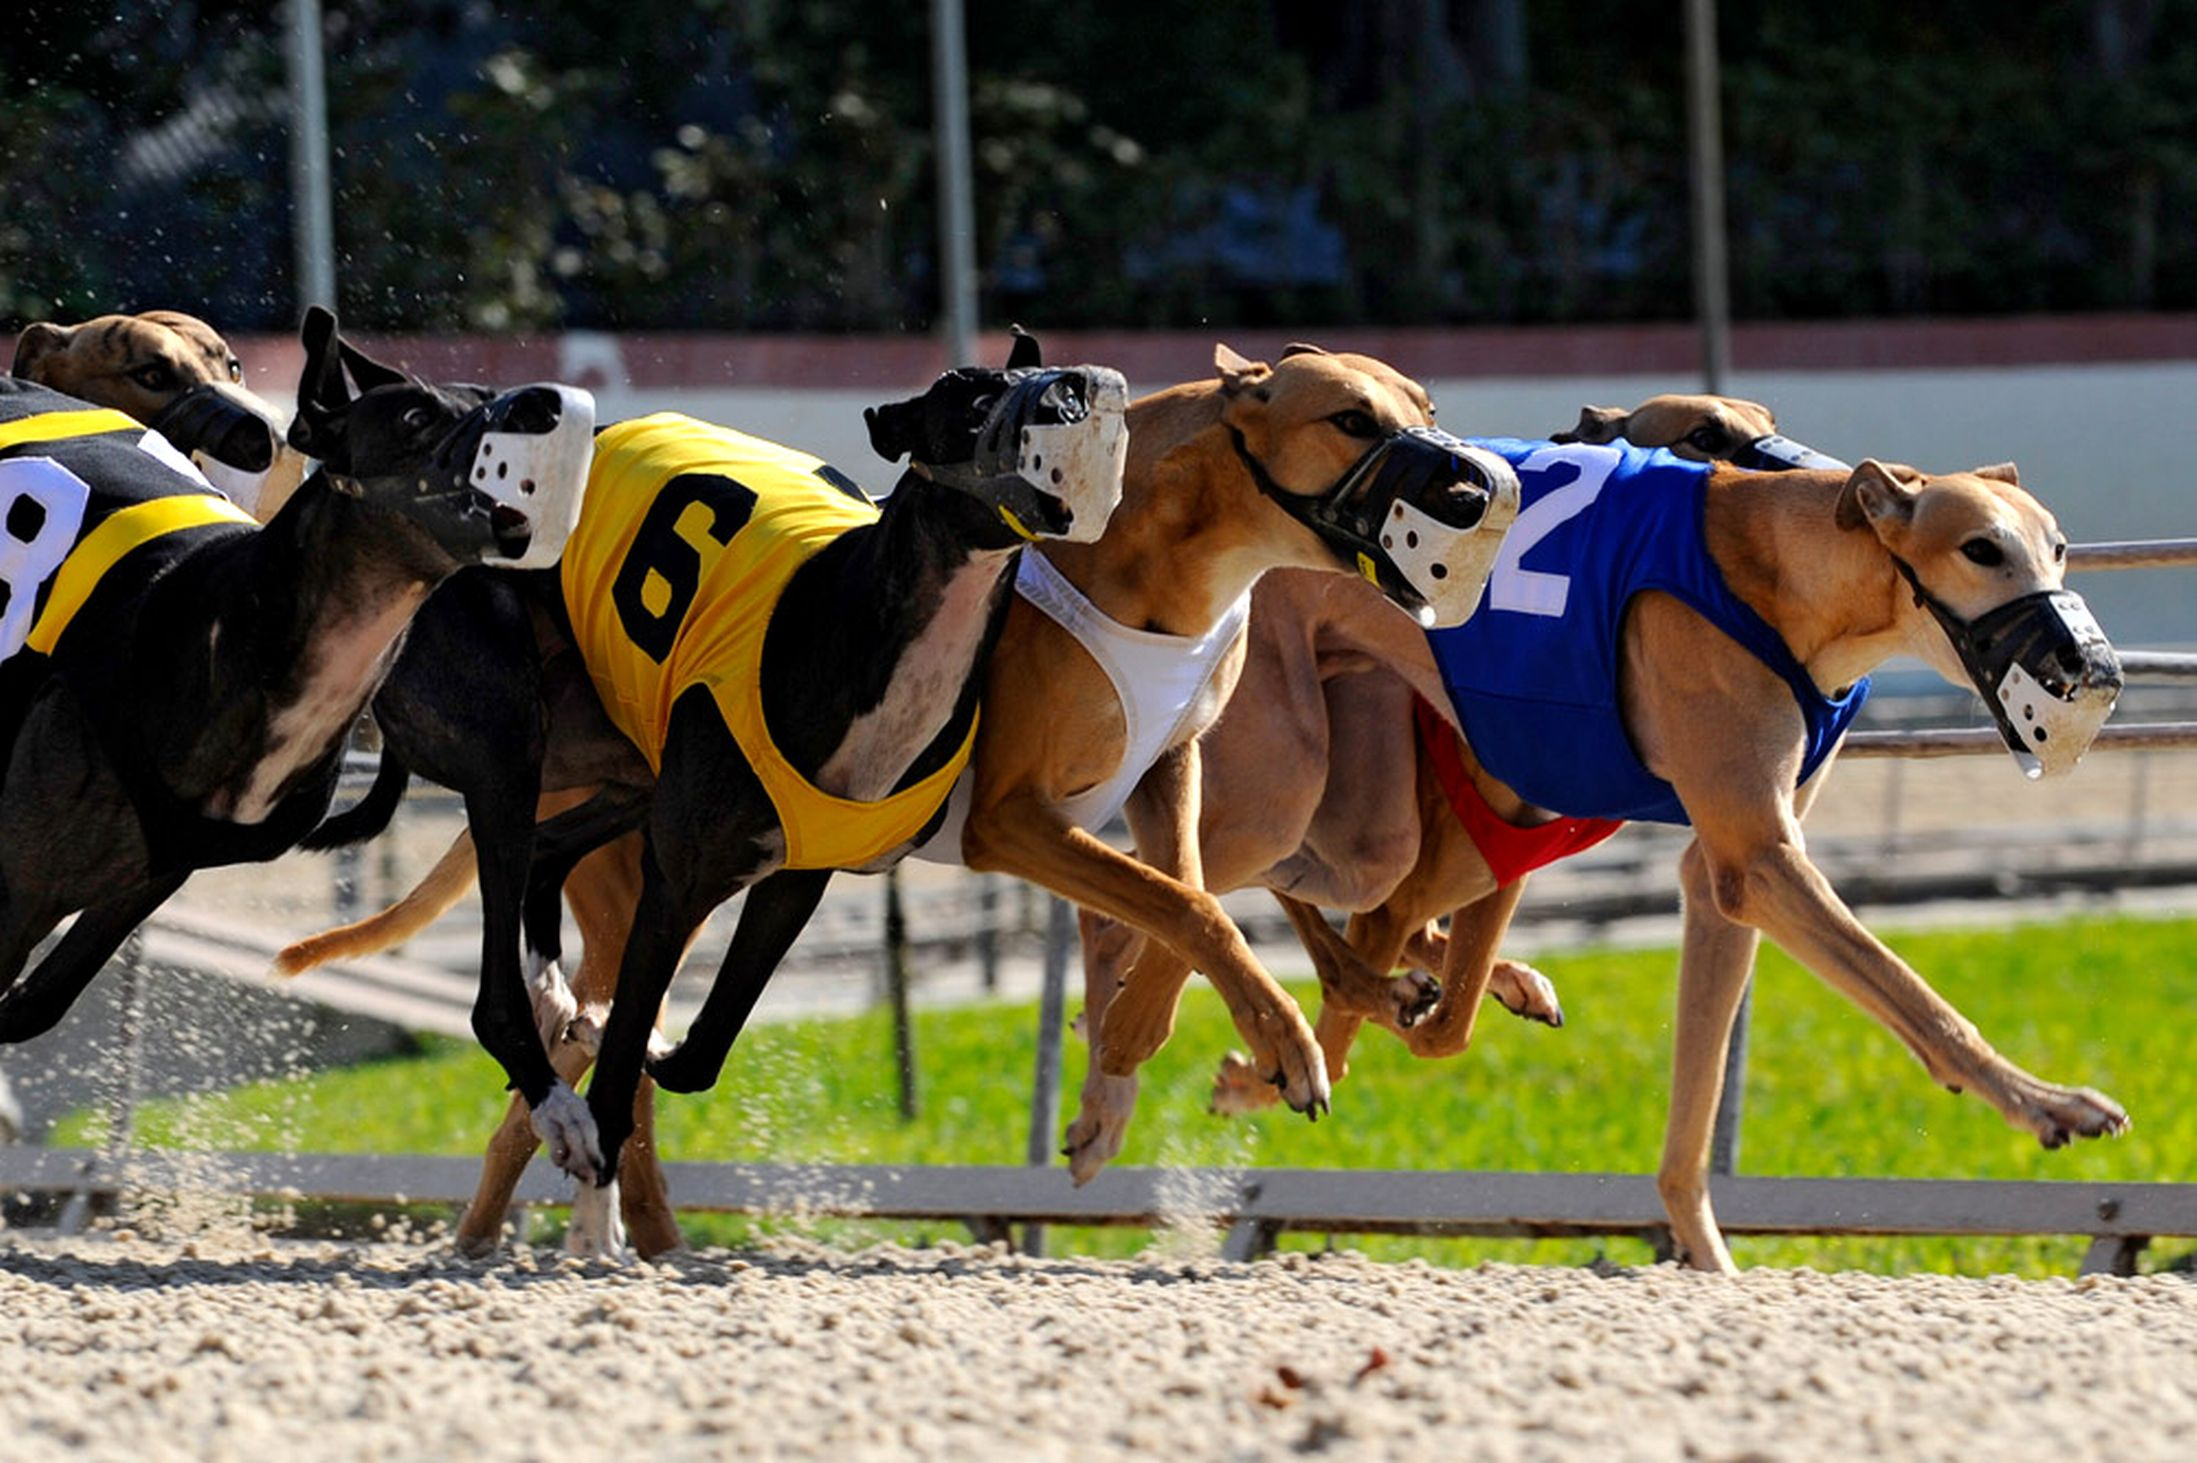 Greyhound Dog Racing Videos Download